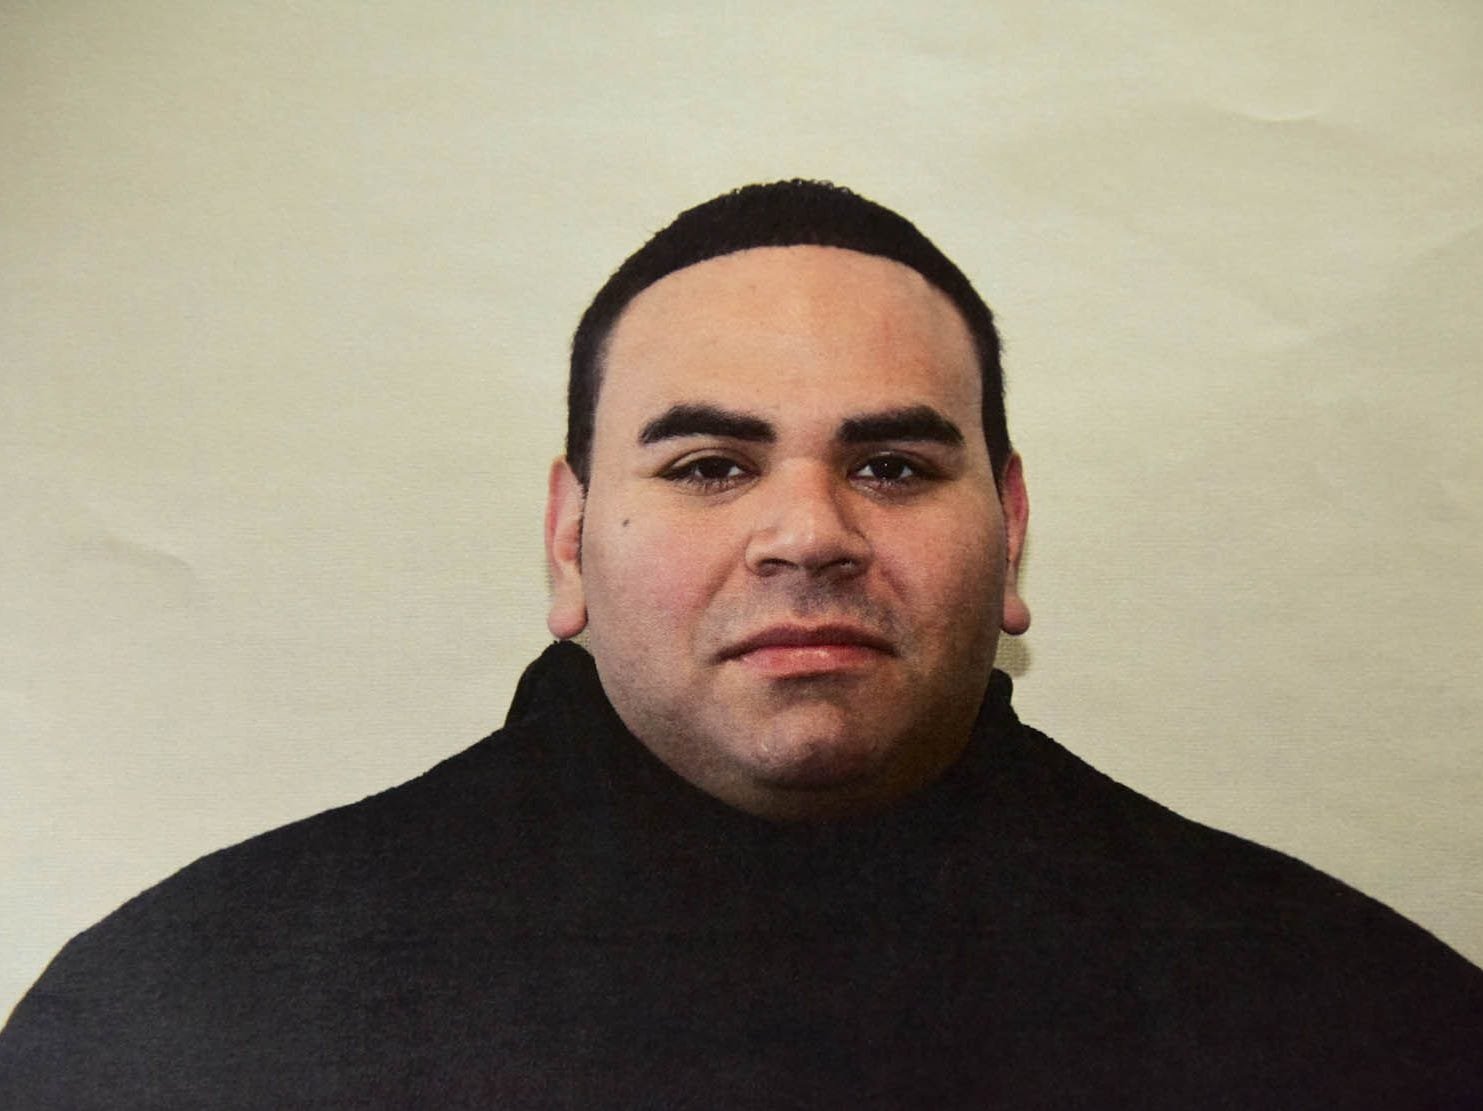 Paterson police officer Jonathan Bustios is charged with extortion and conspiracy to deprive persons of their human rights.